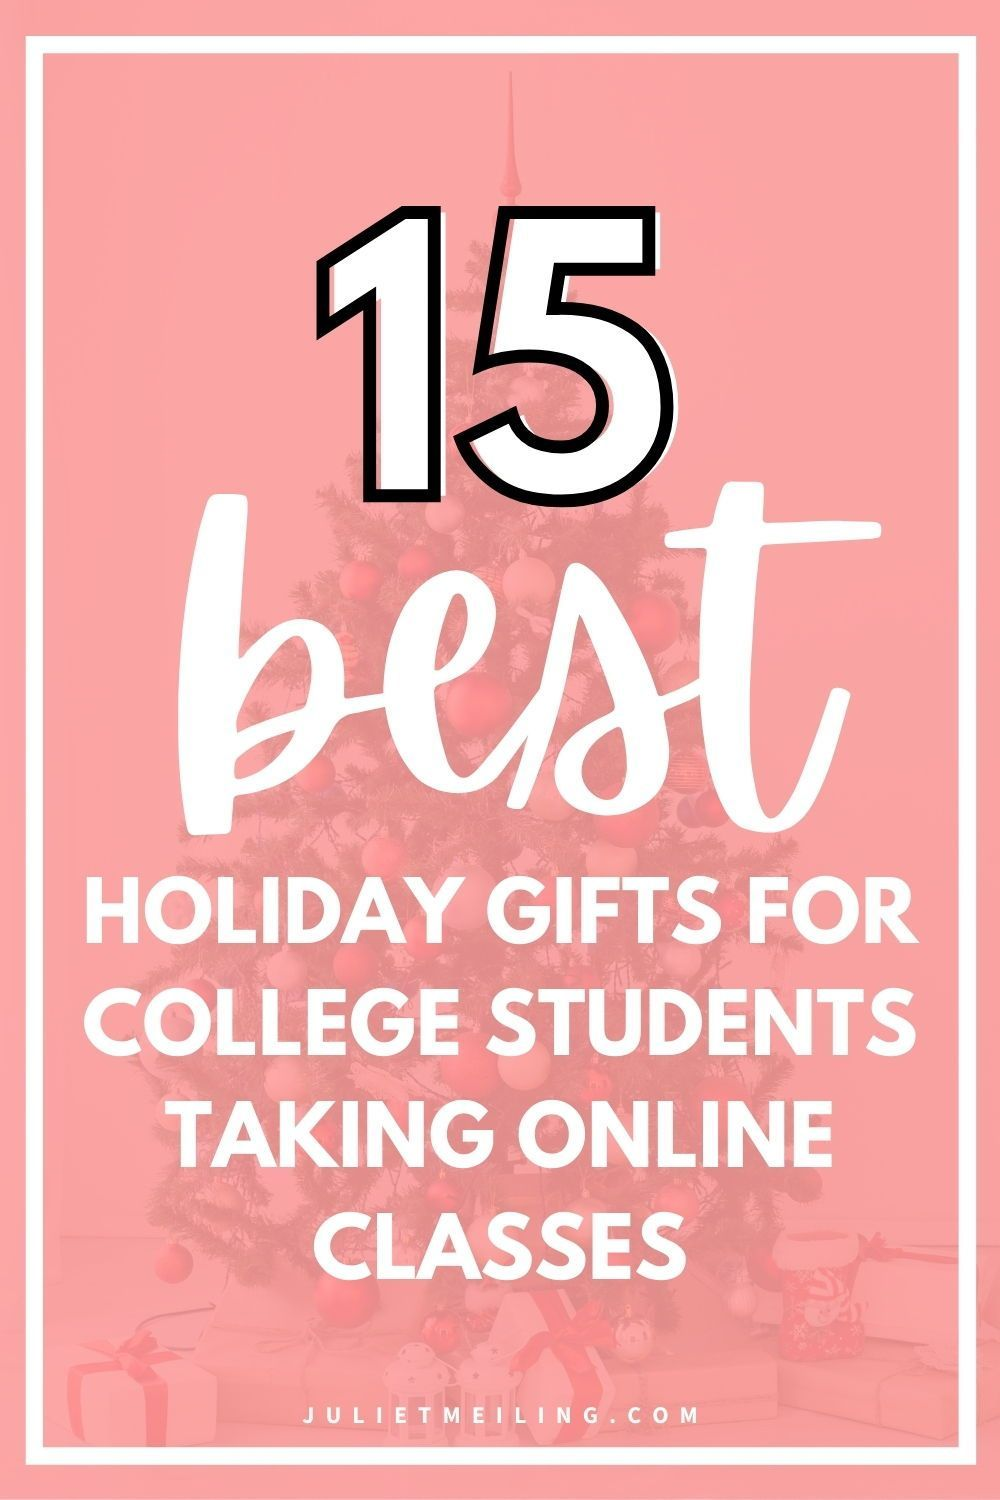 Best Christmas Gifts For College Students 2021 15 Best Holiday Gifts For Online College Students 2021 Student Gifts Online College College Students